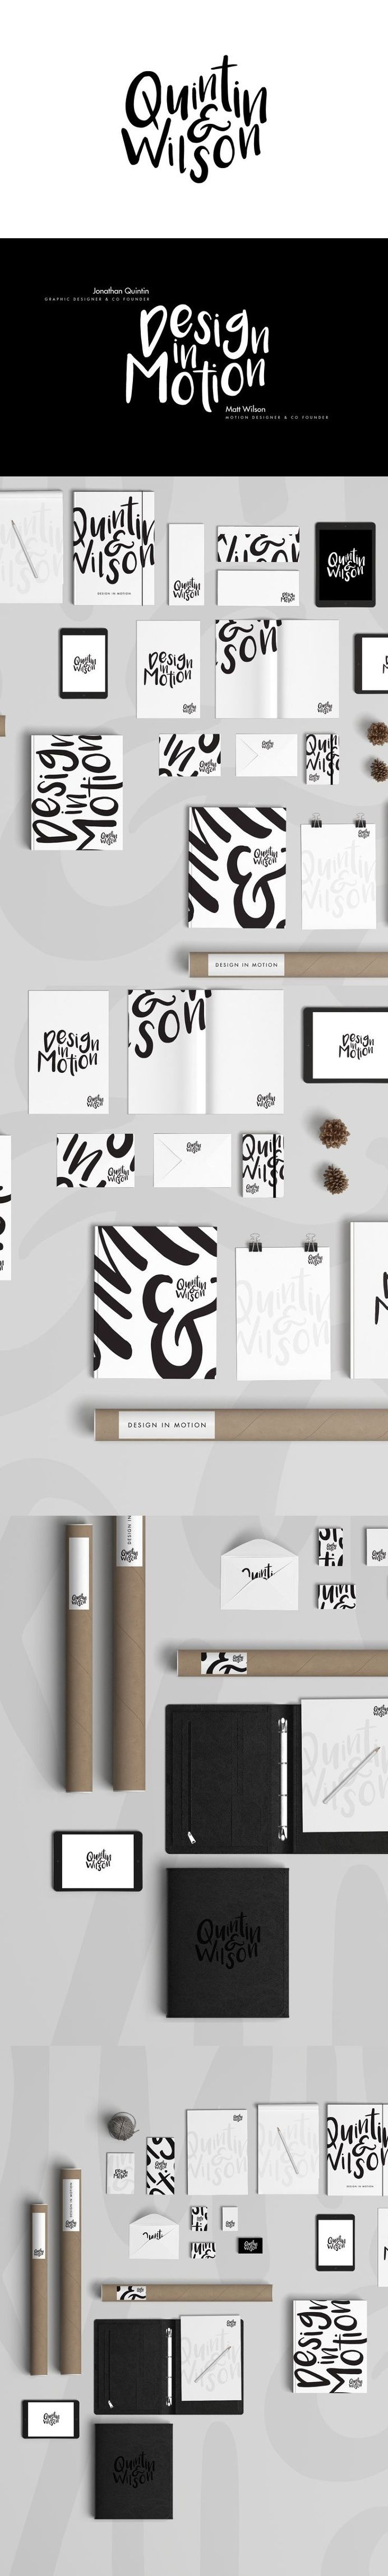 Black and white, brand identity design collection | Quintin & Wilson | Design In Motion